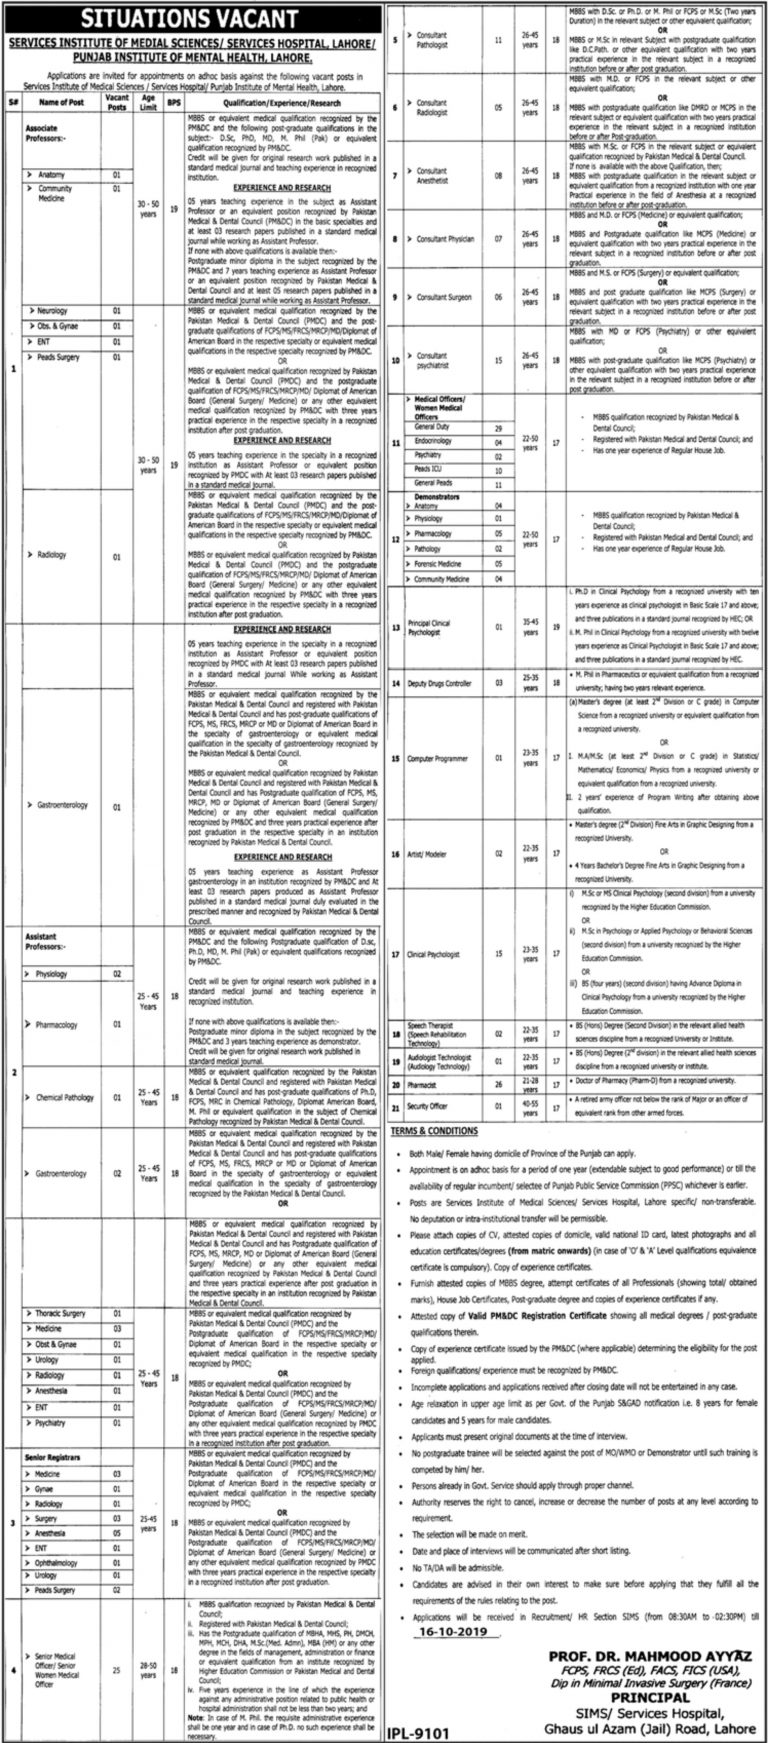 Services Hospital Lahore Jobs 2019 Latest Current Openings